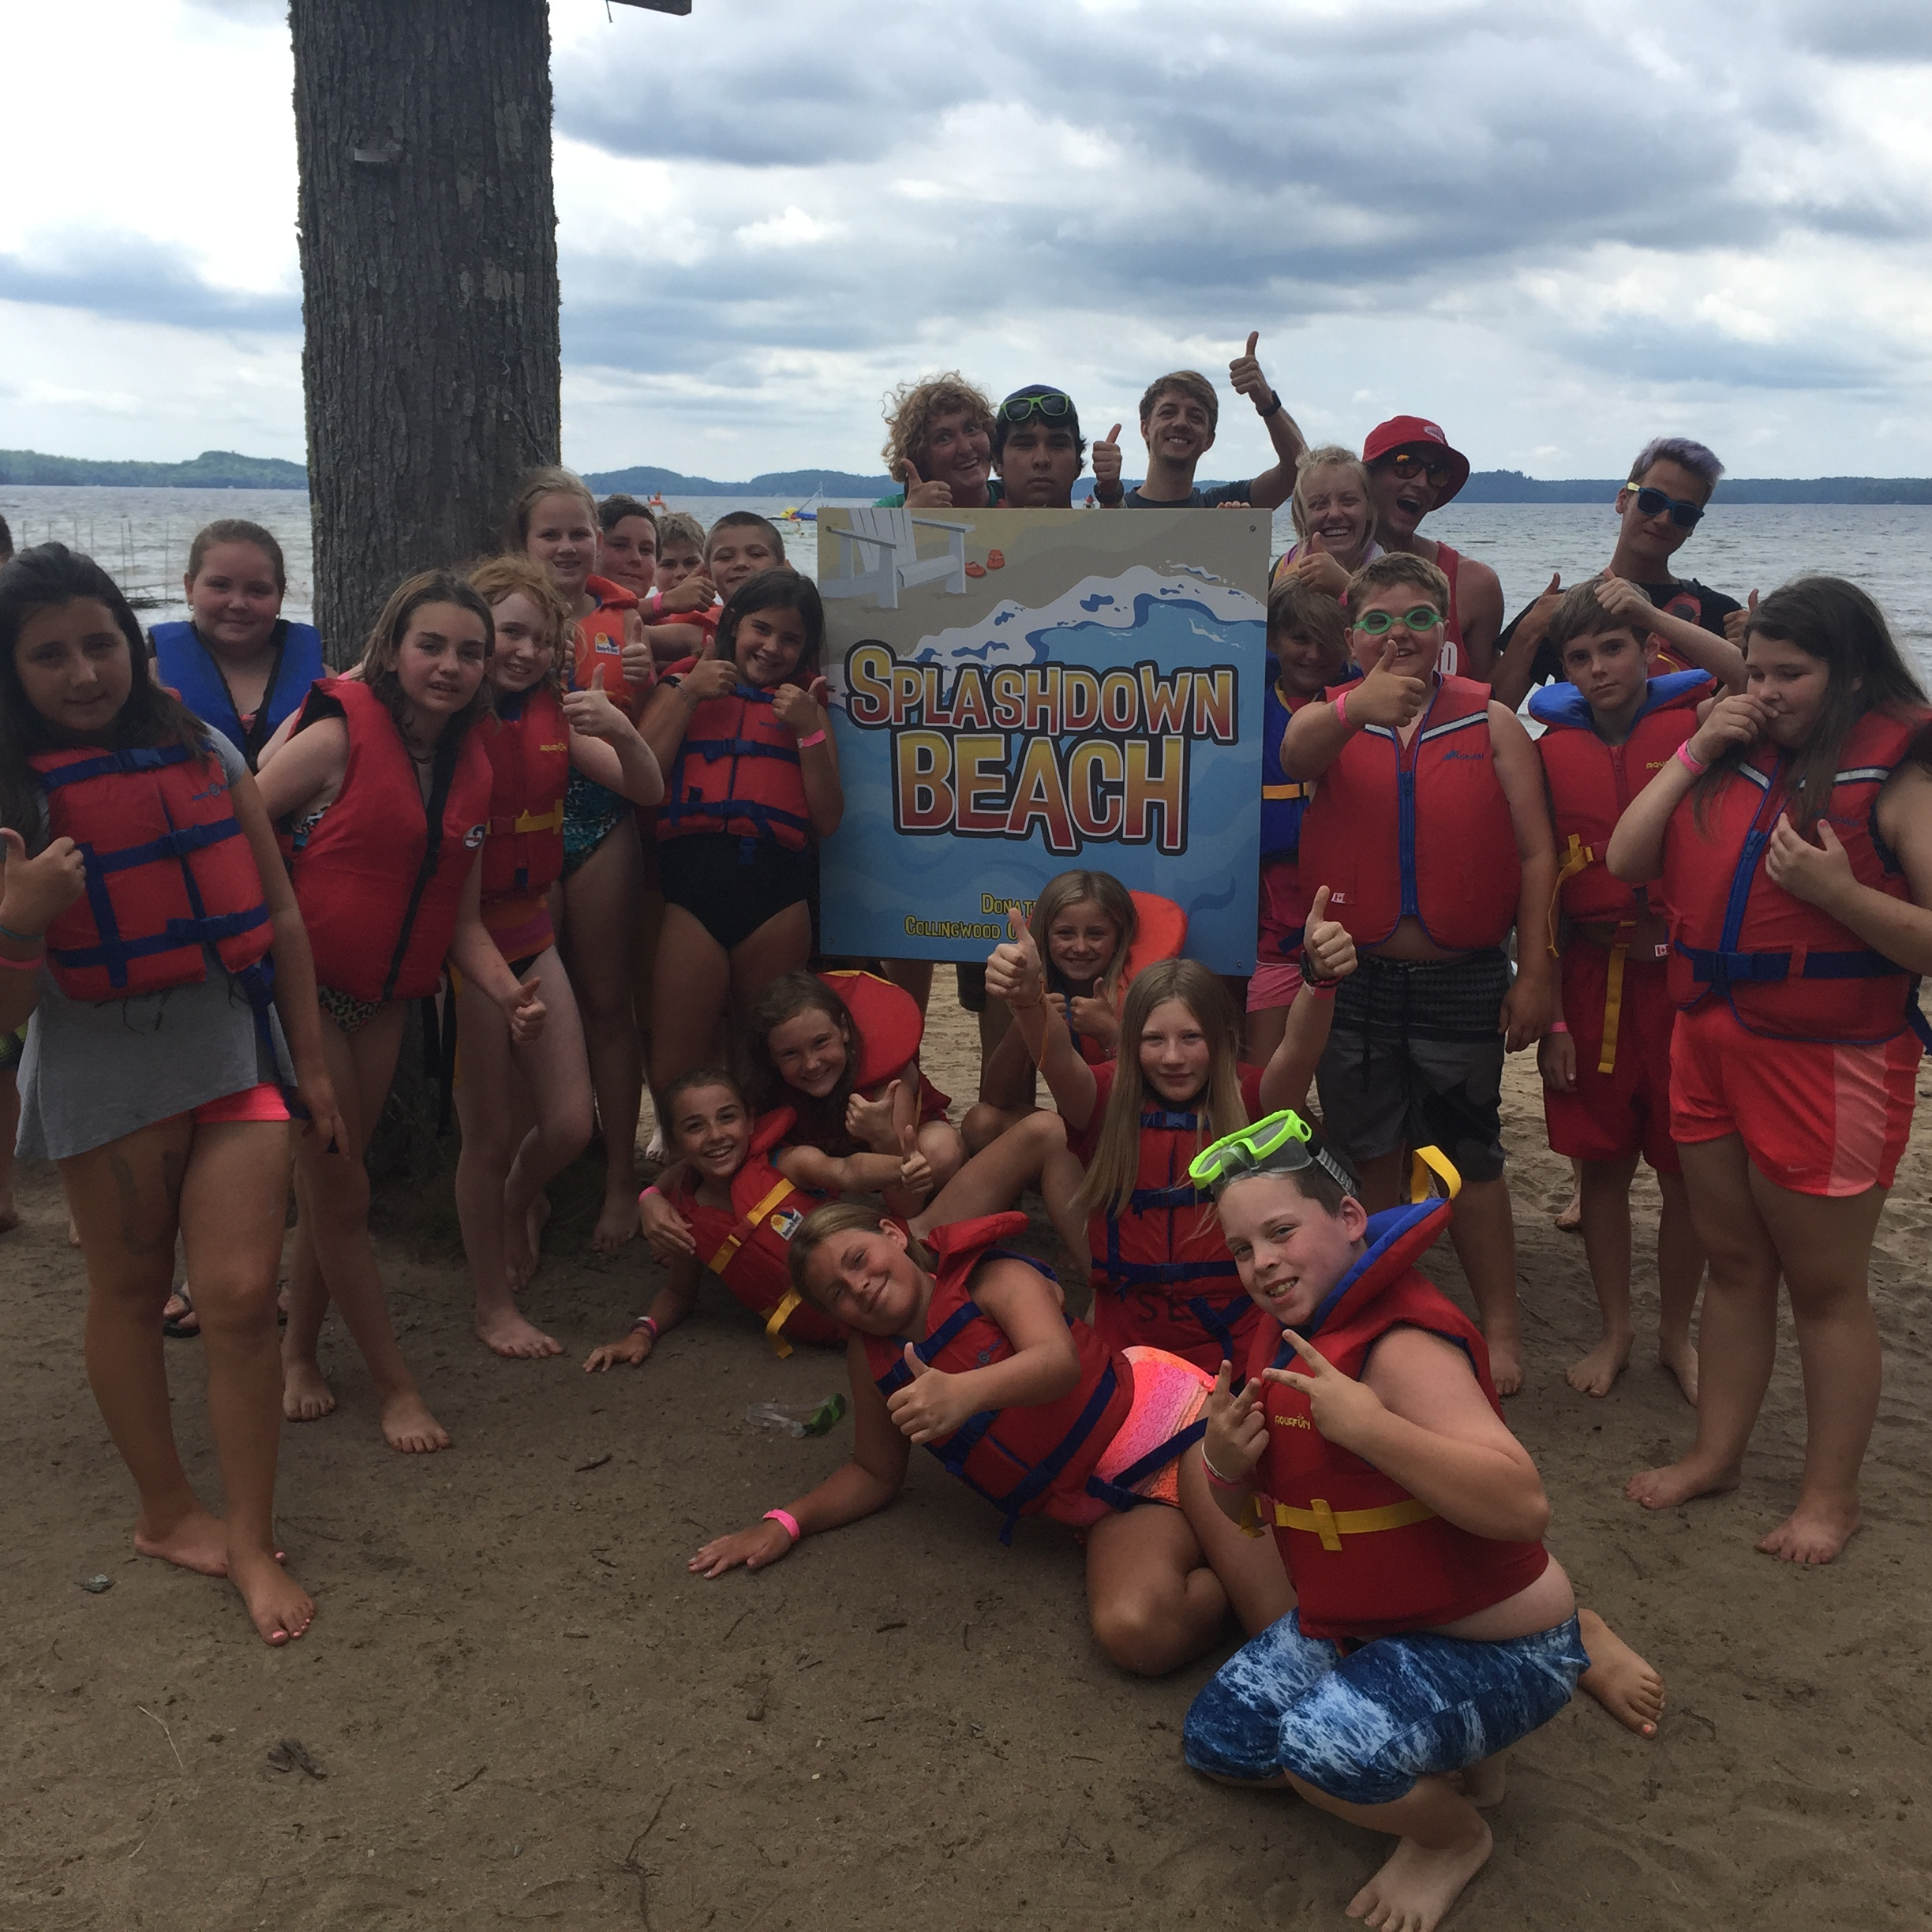 Campers in lifejackets posing on the Newport Beach in front of the Splashdown Beach sign